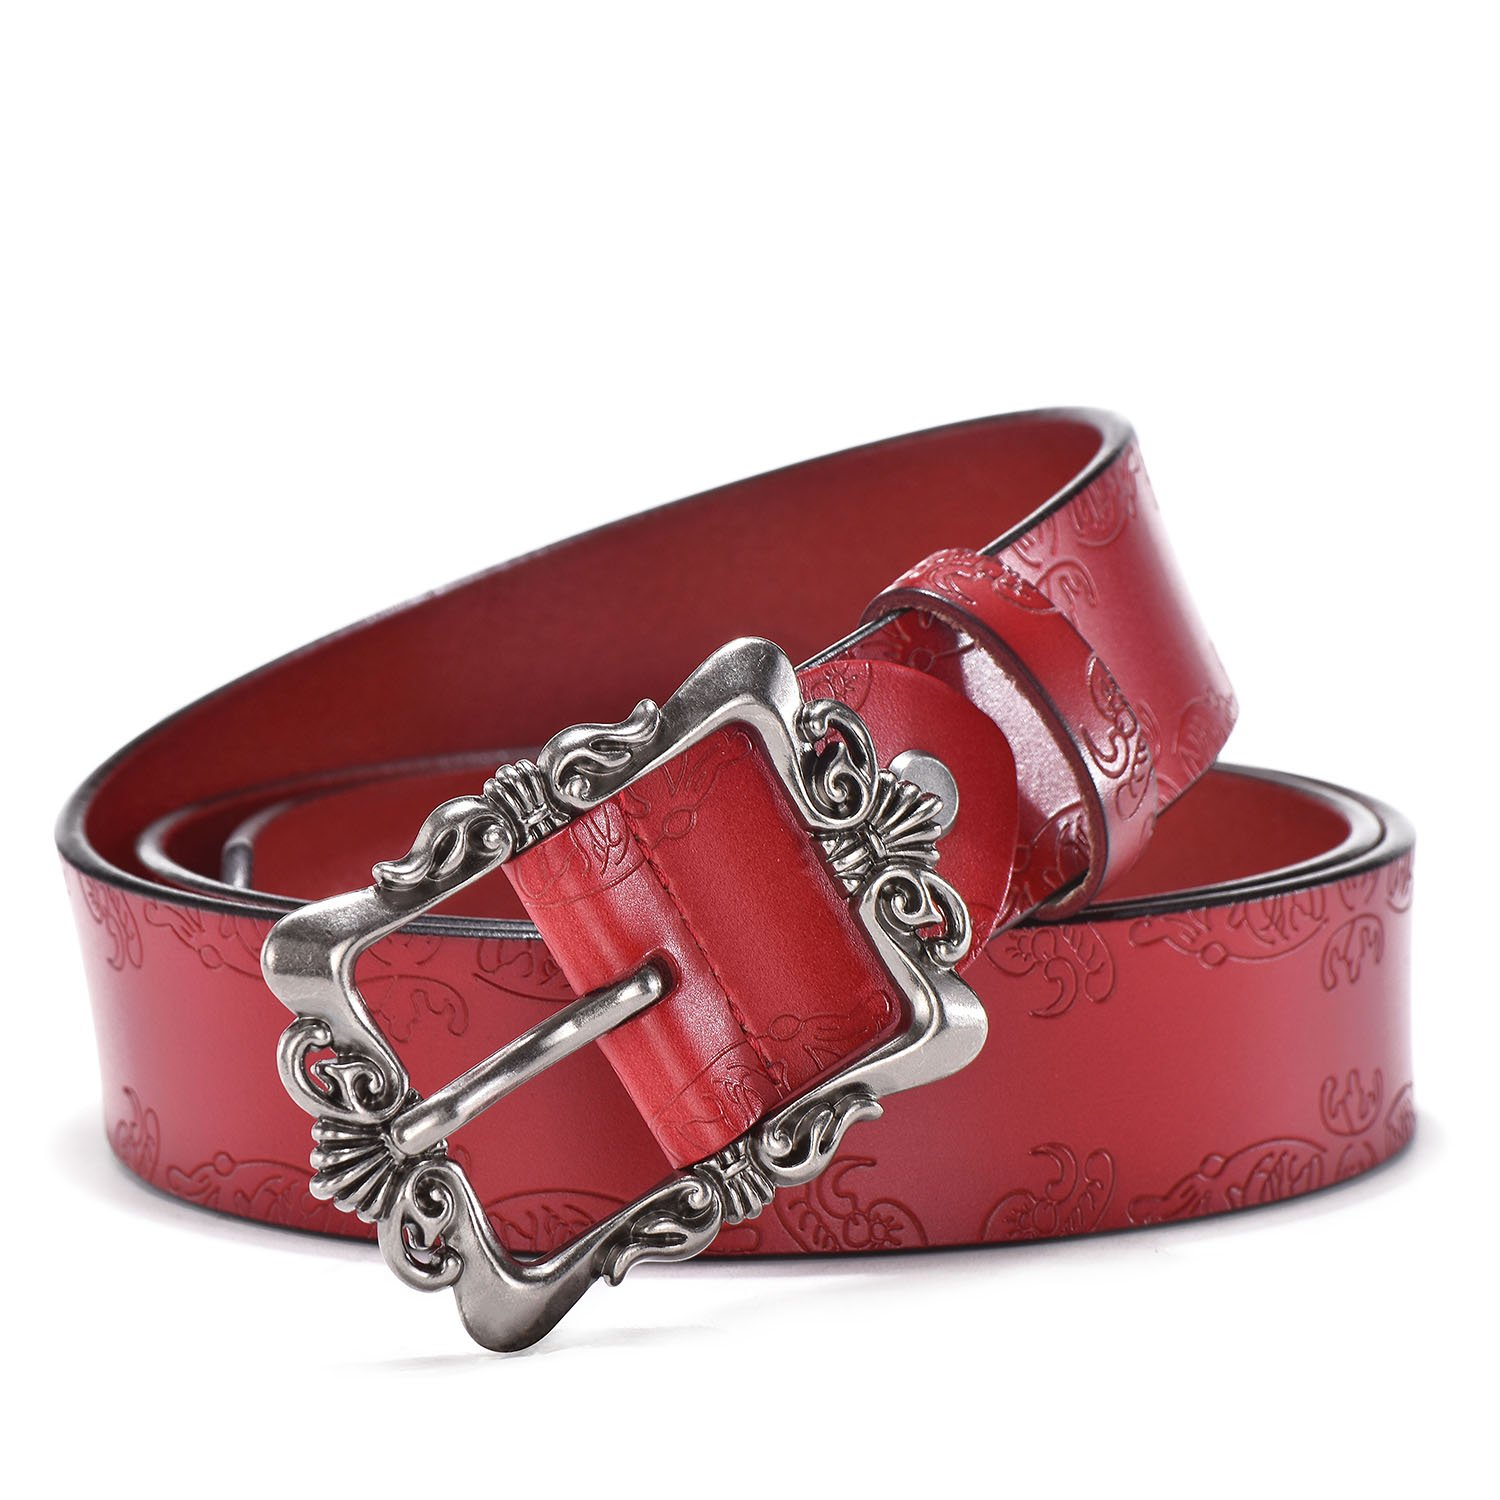 TUNGHO Genuine Leather Belts For Women Cowhide Embossing Design Carving Buckle Plus Size XXL (M, Max pants size 38'', Silvery Buckle/Red)